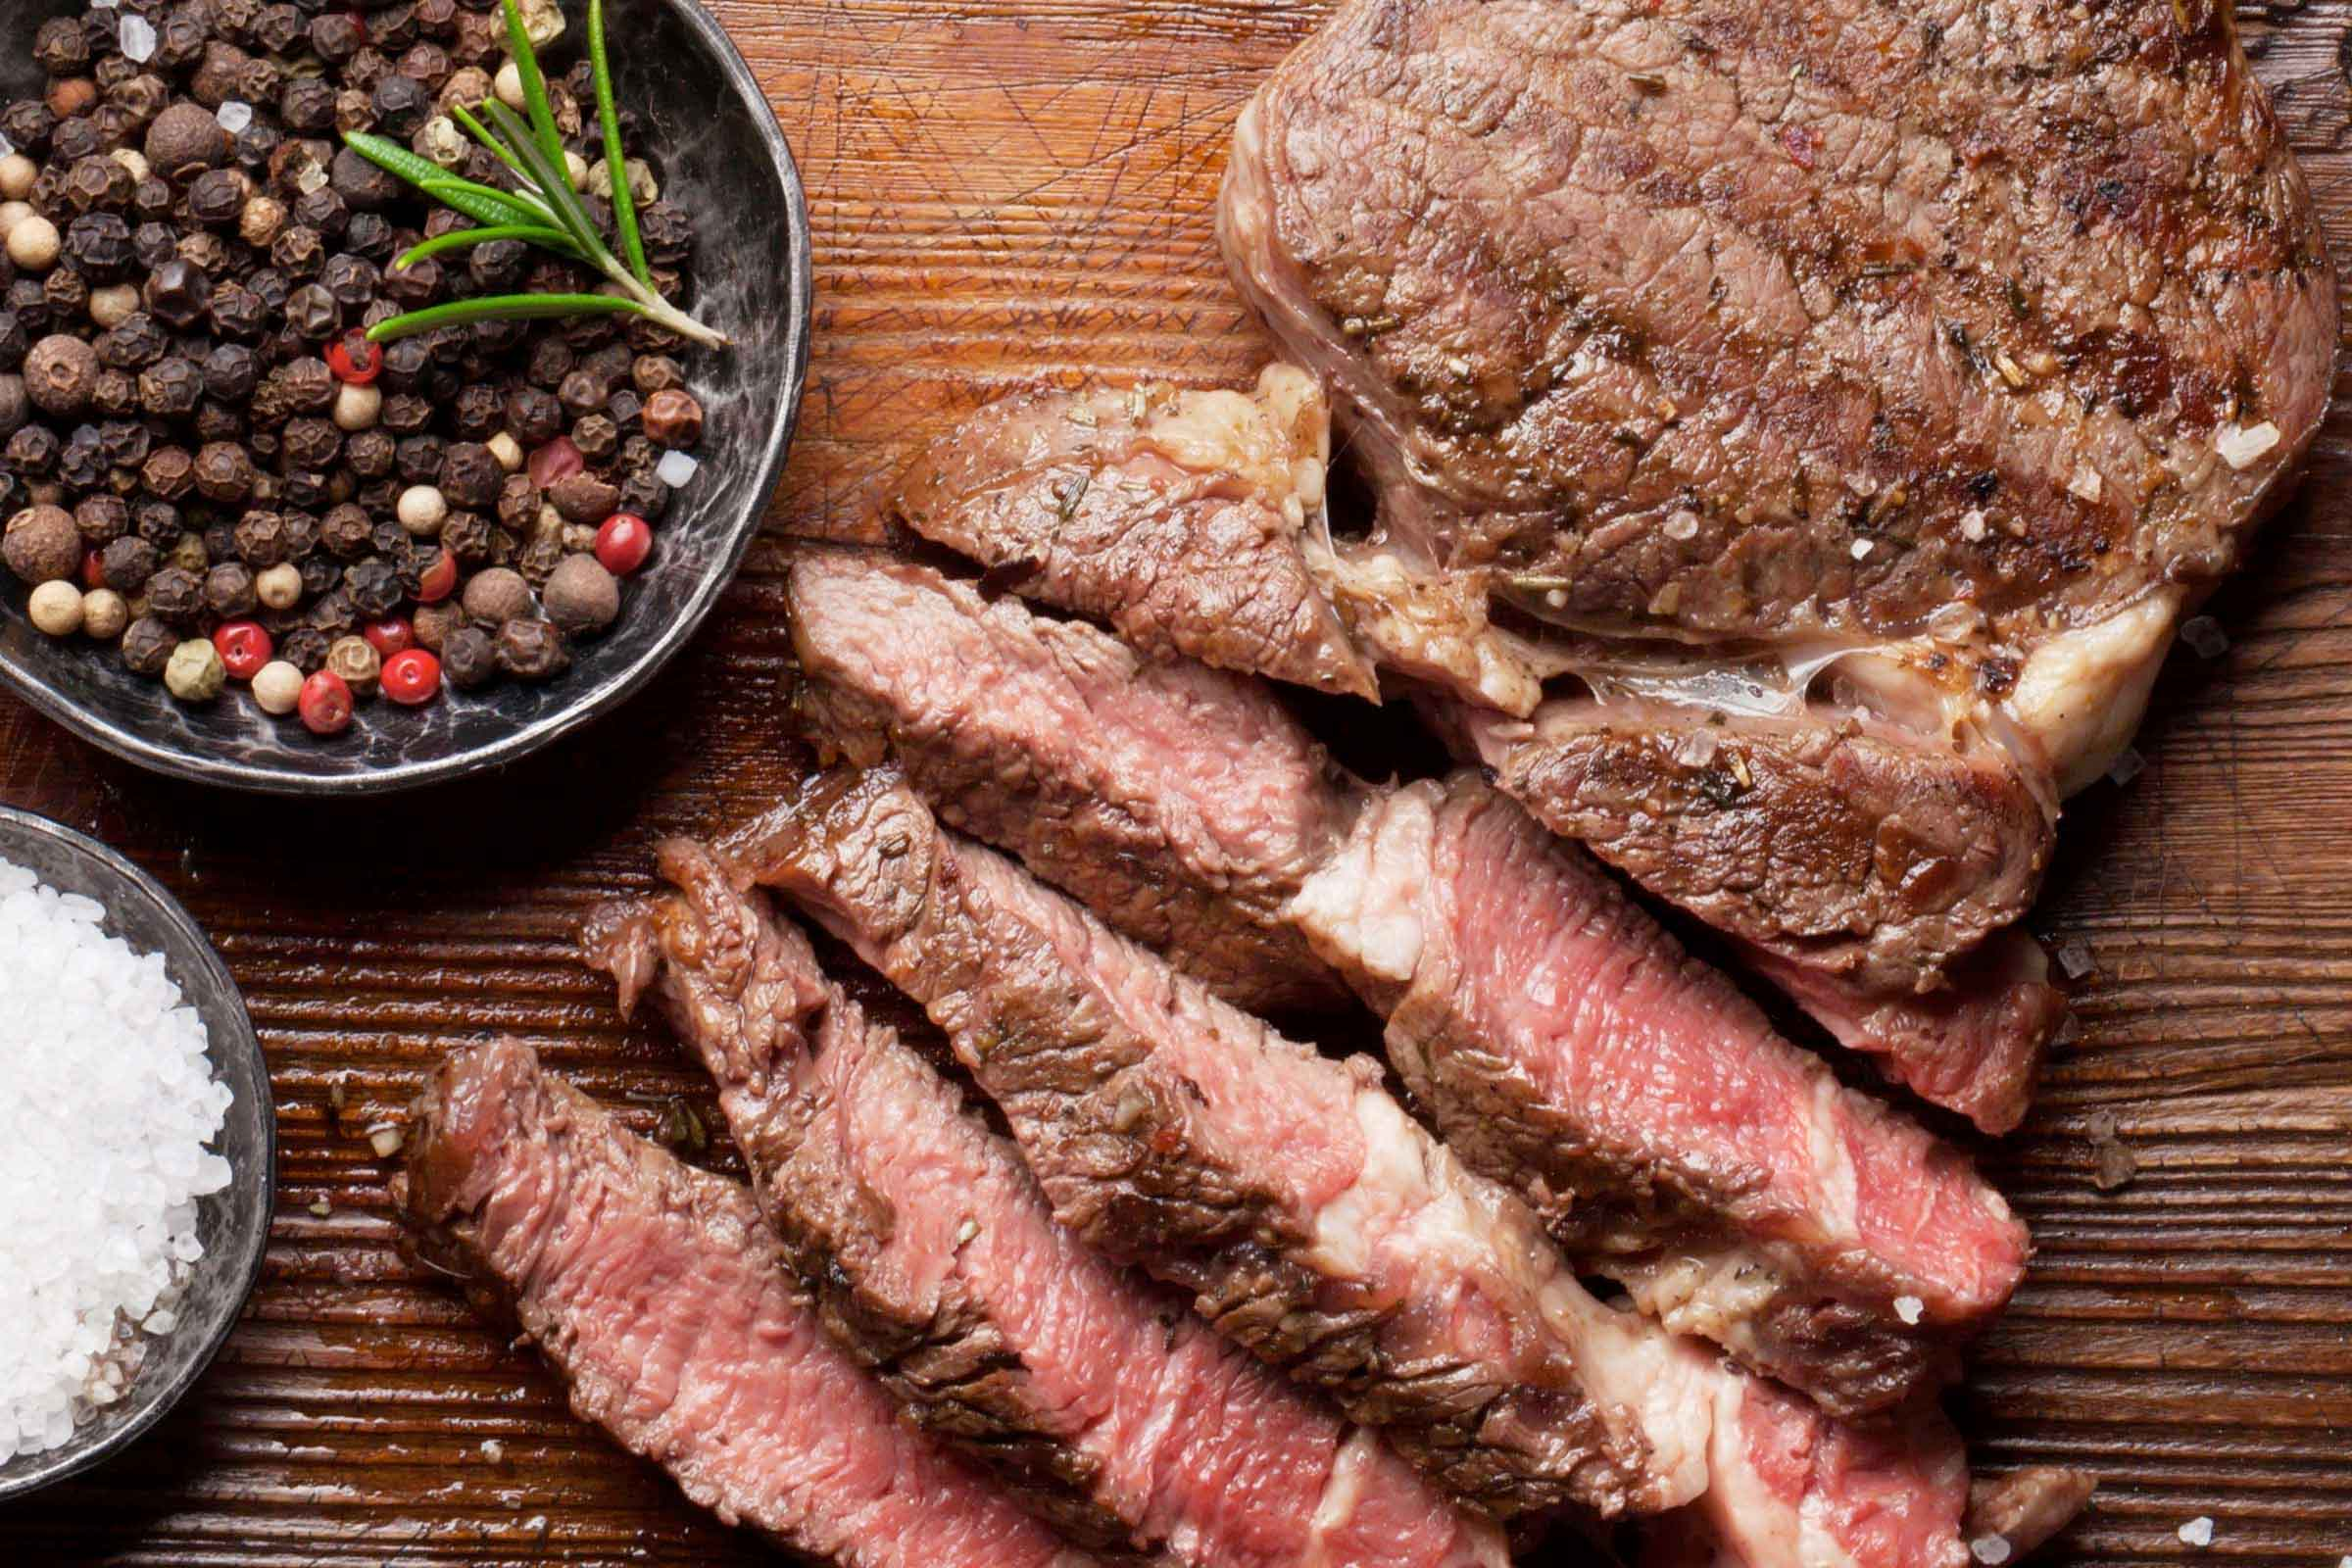 Frank & Gino's Succulent Steaks